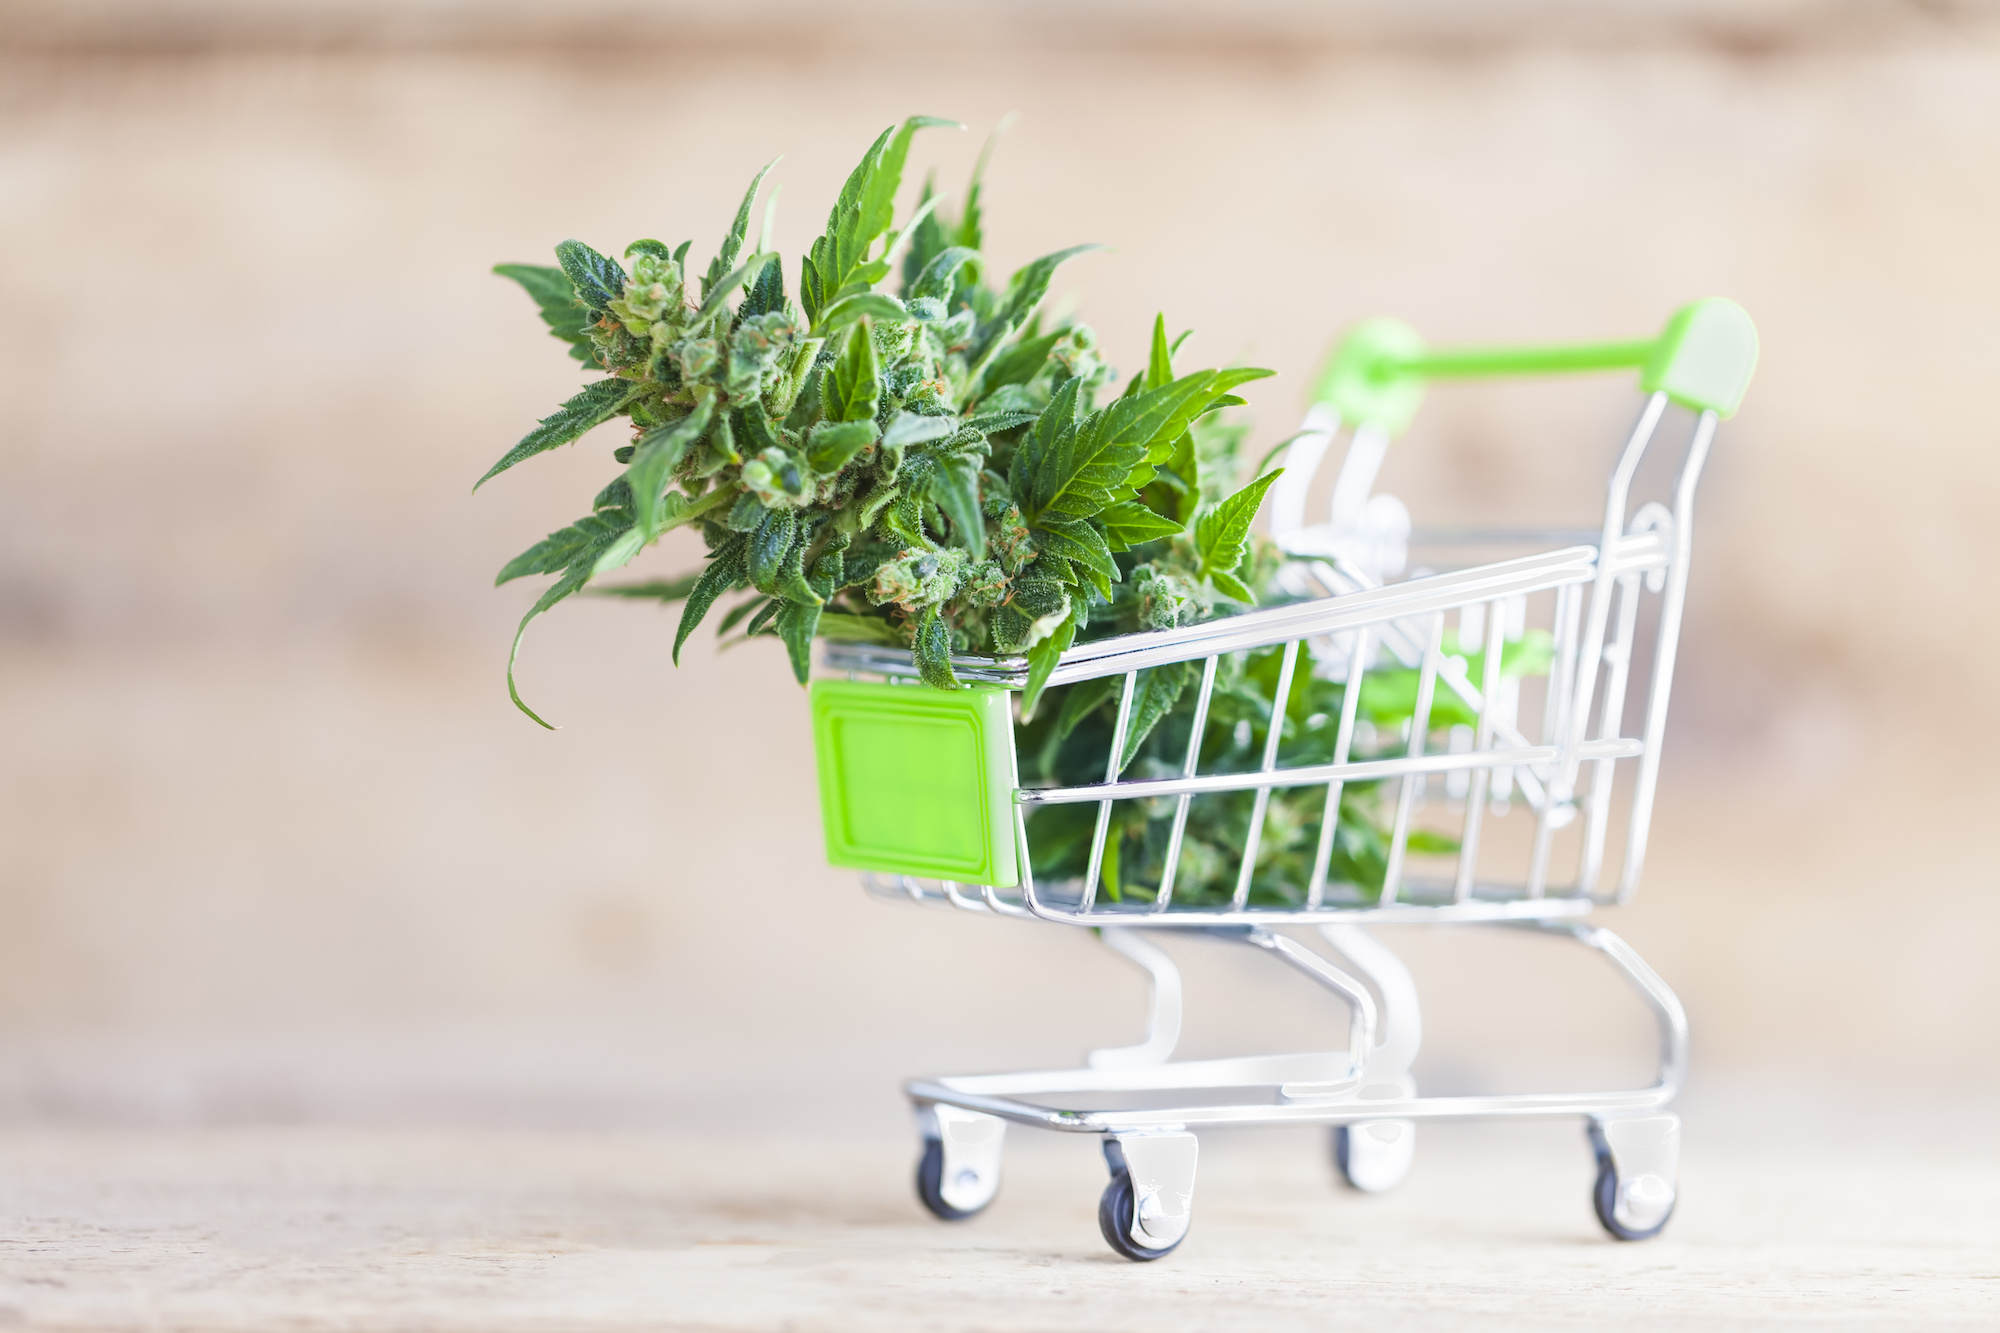 You can buy with the new way of weed delivery Whitby